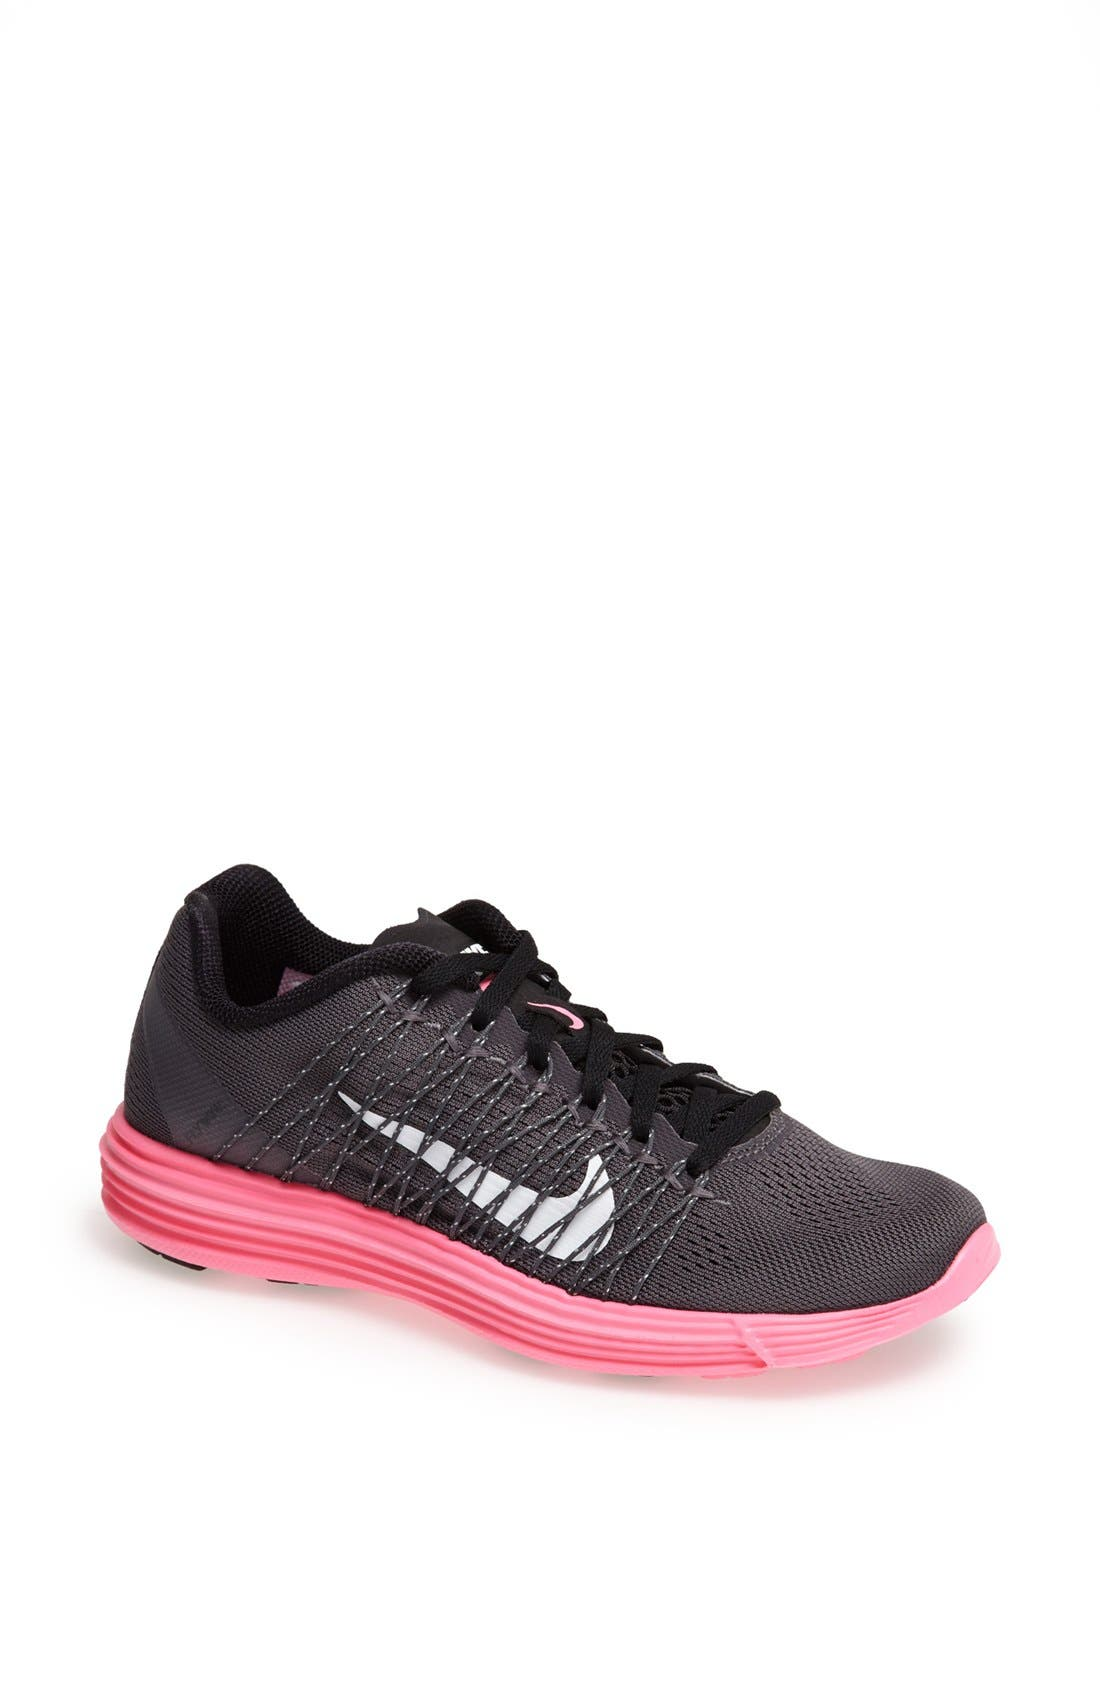 'Lunaracer+ 3' Running Shoe, Main, color, 016